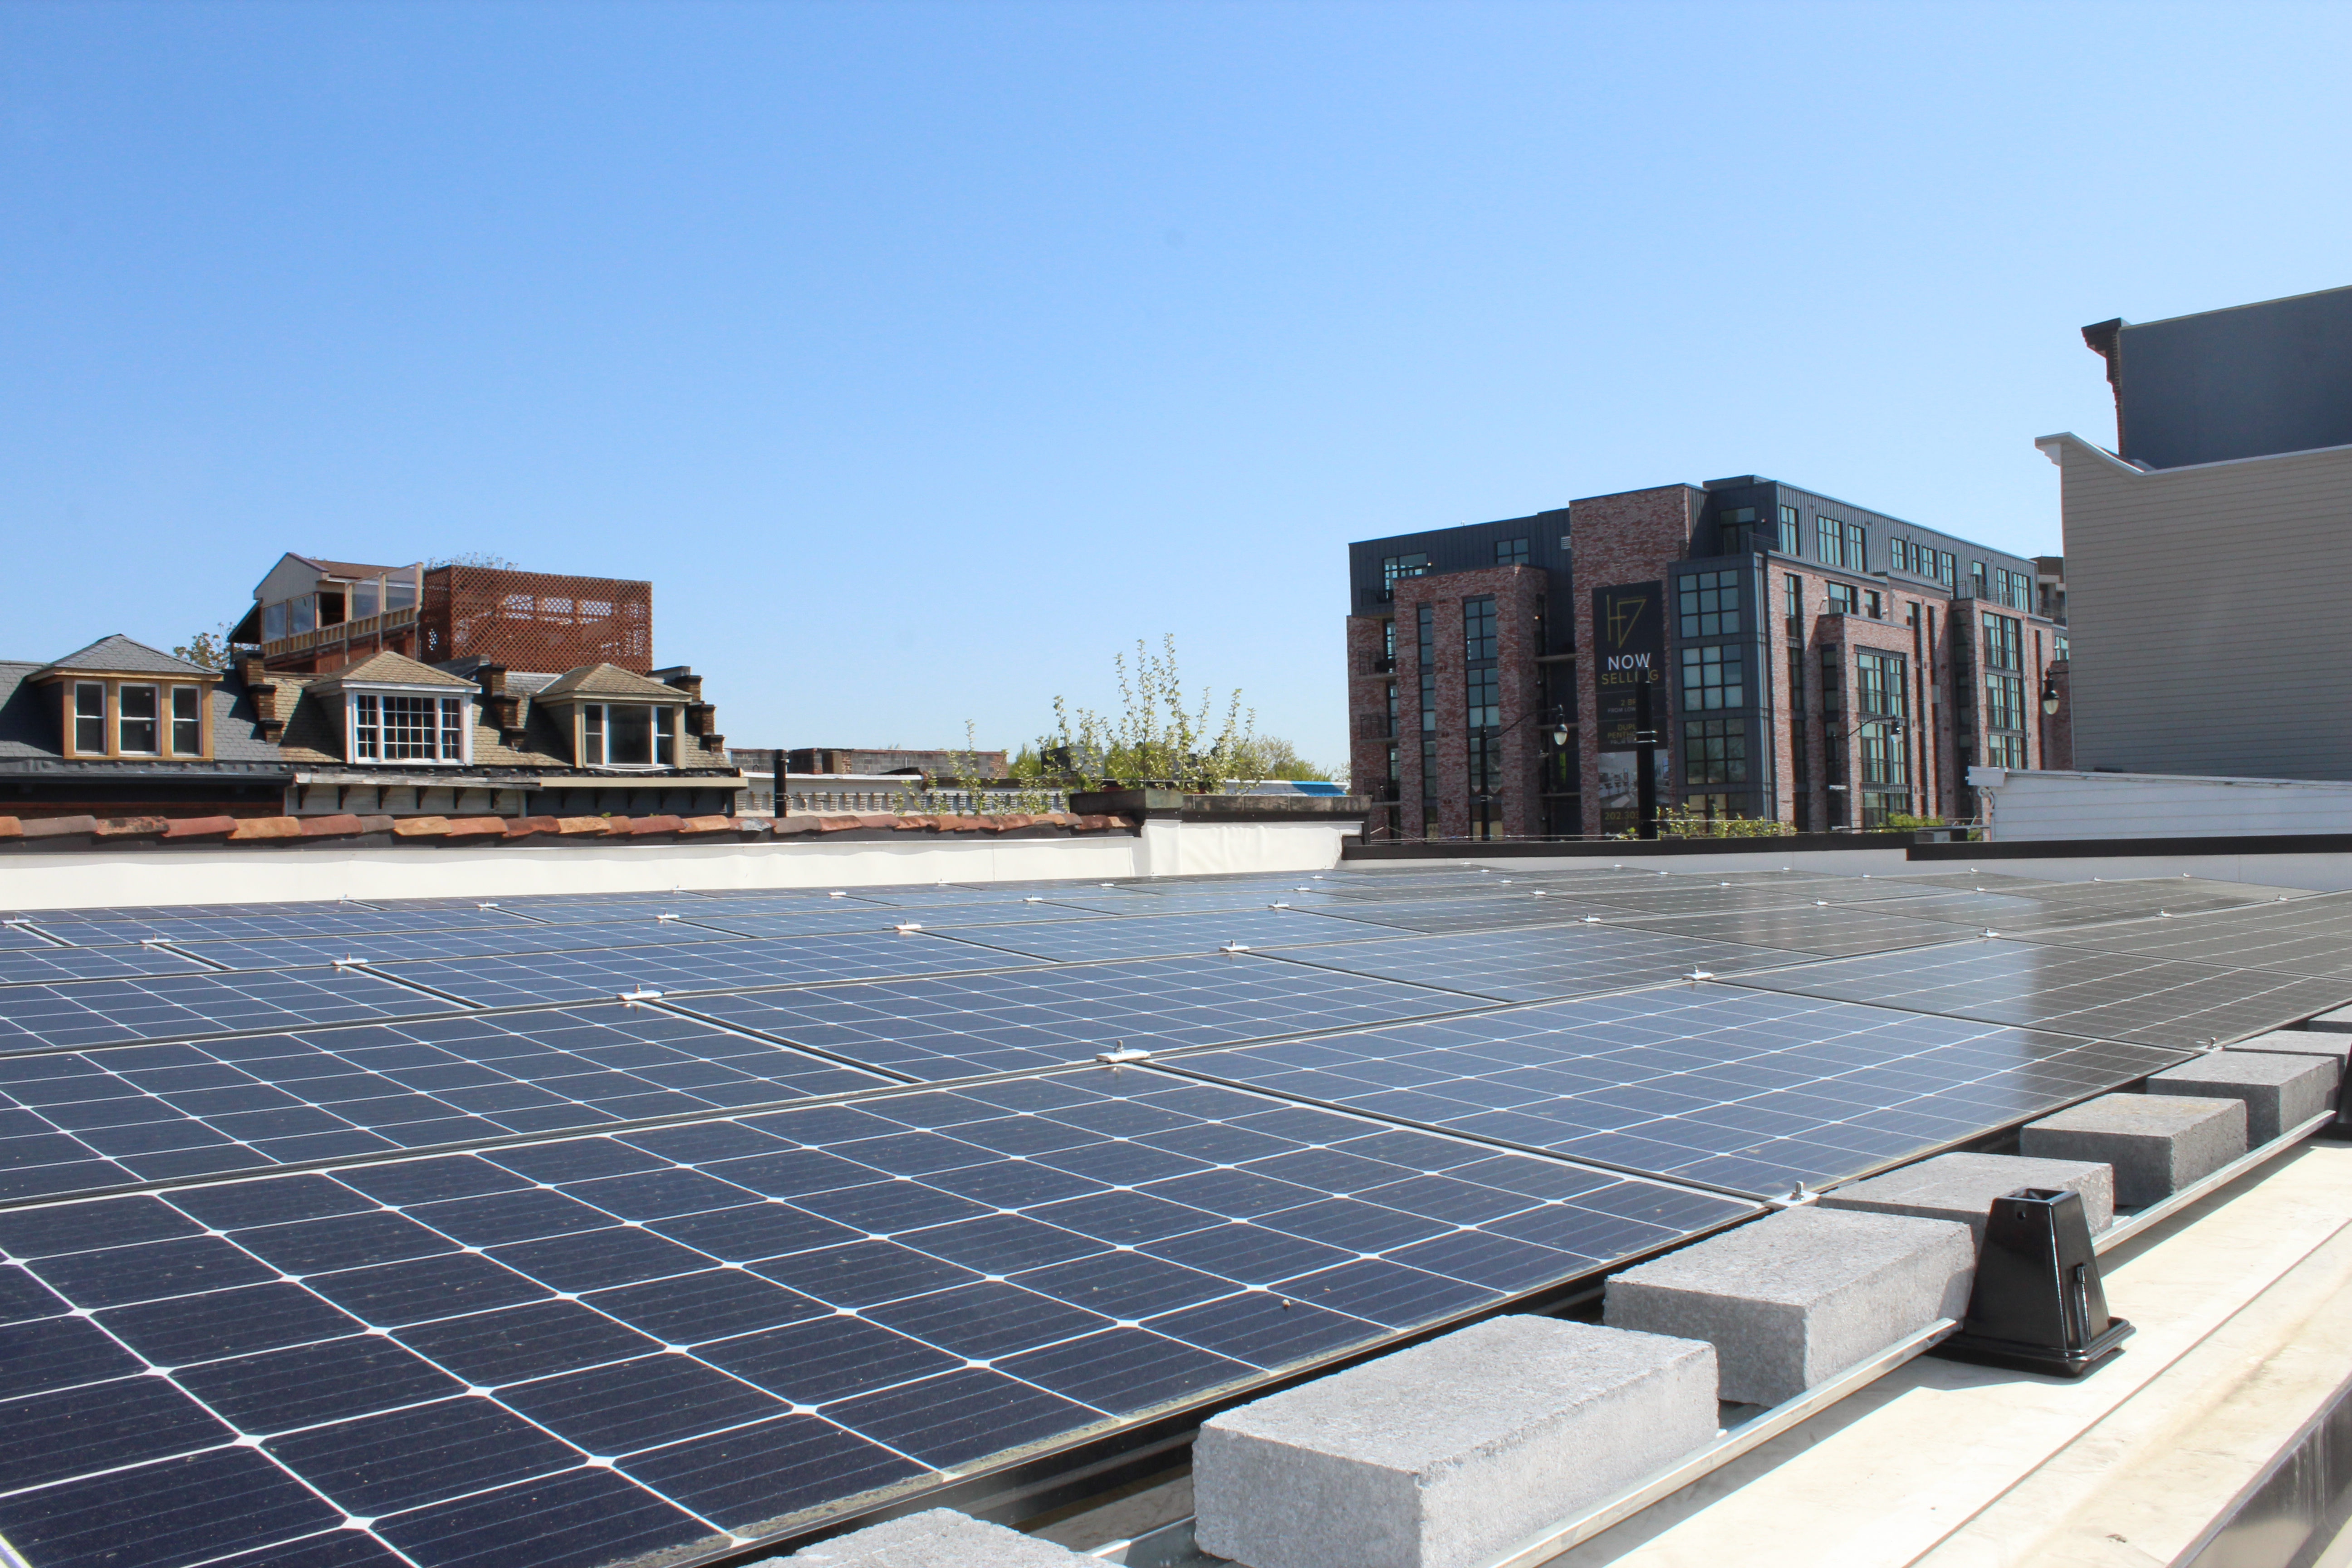 Solar PPAs like the Fairfax County Solar Initiativeare not allowed in Virginia anymore. The law has to change.